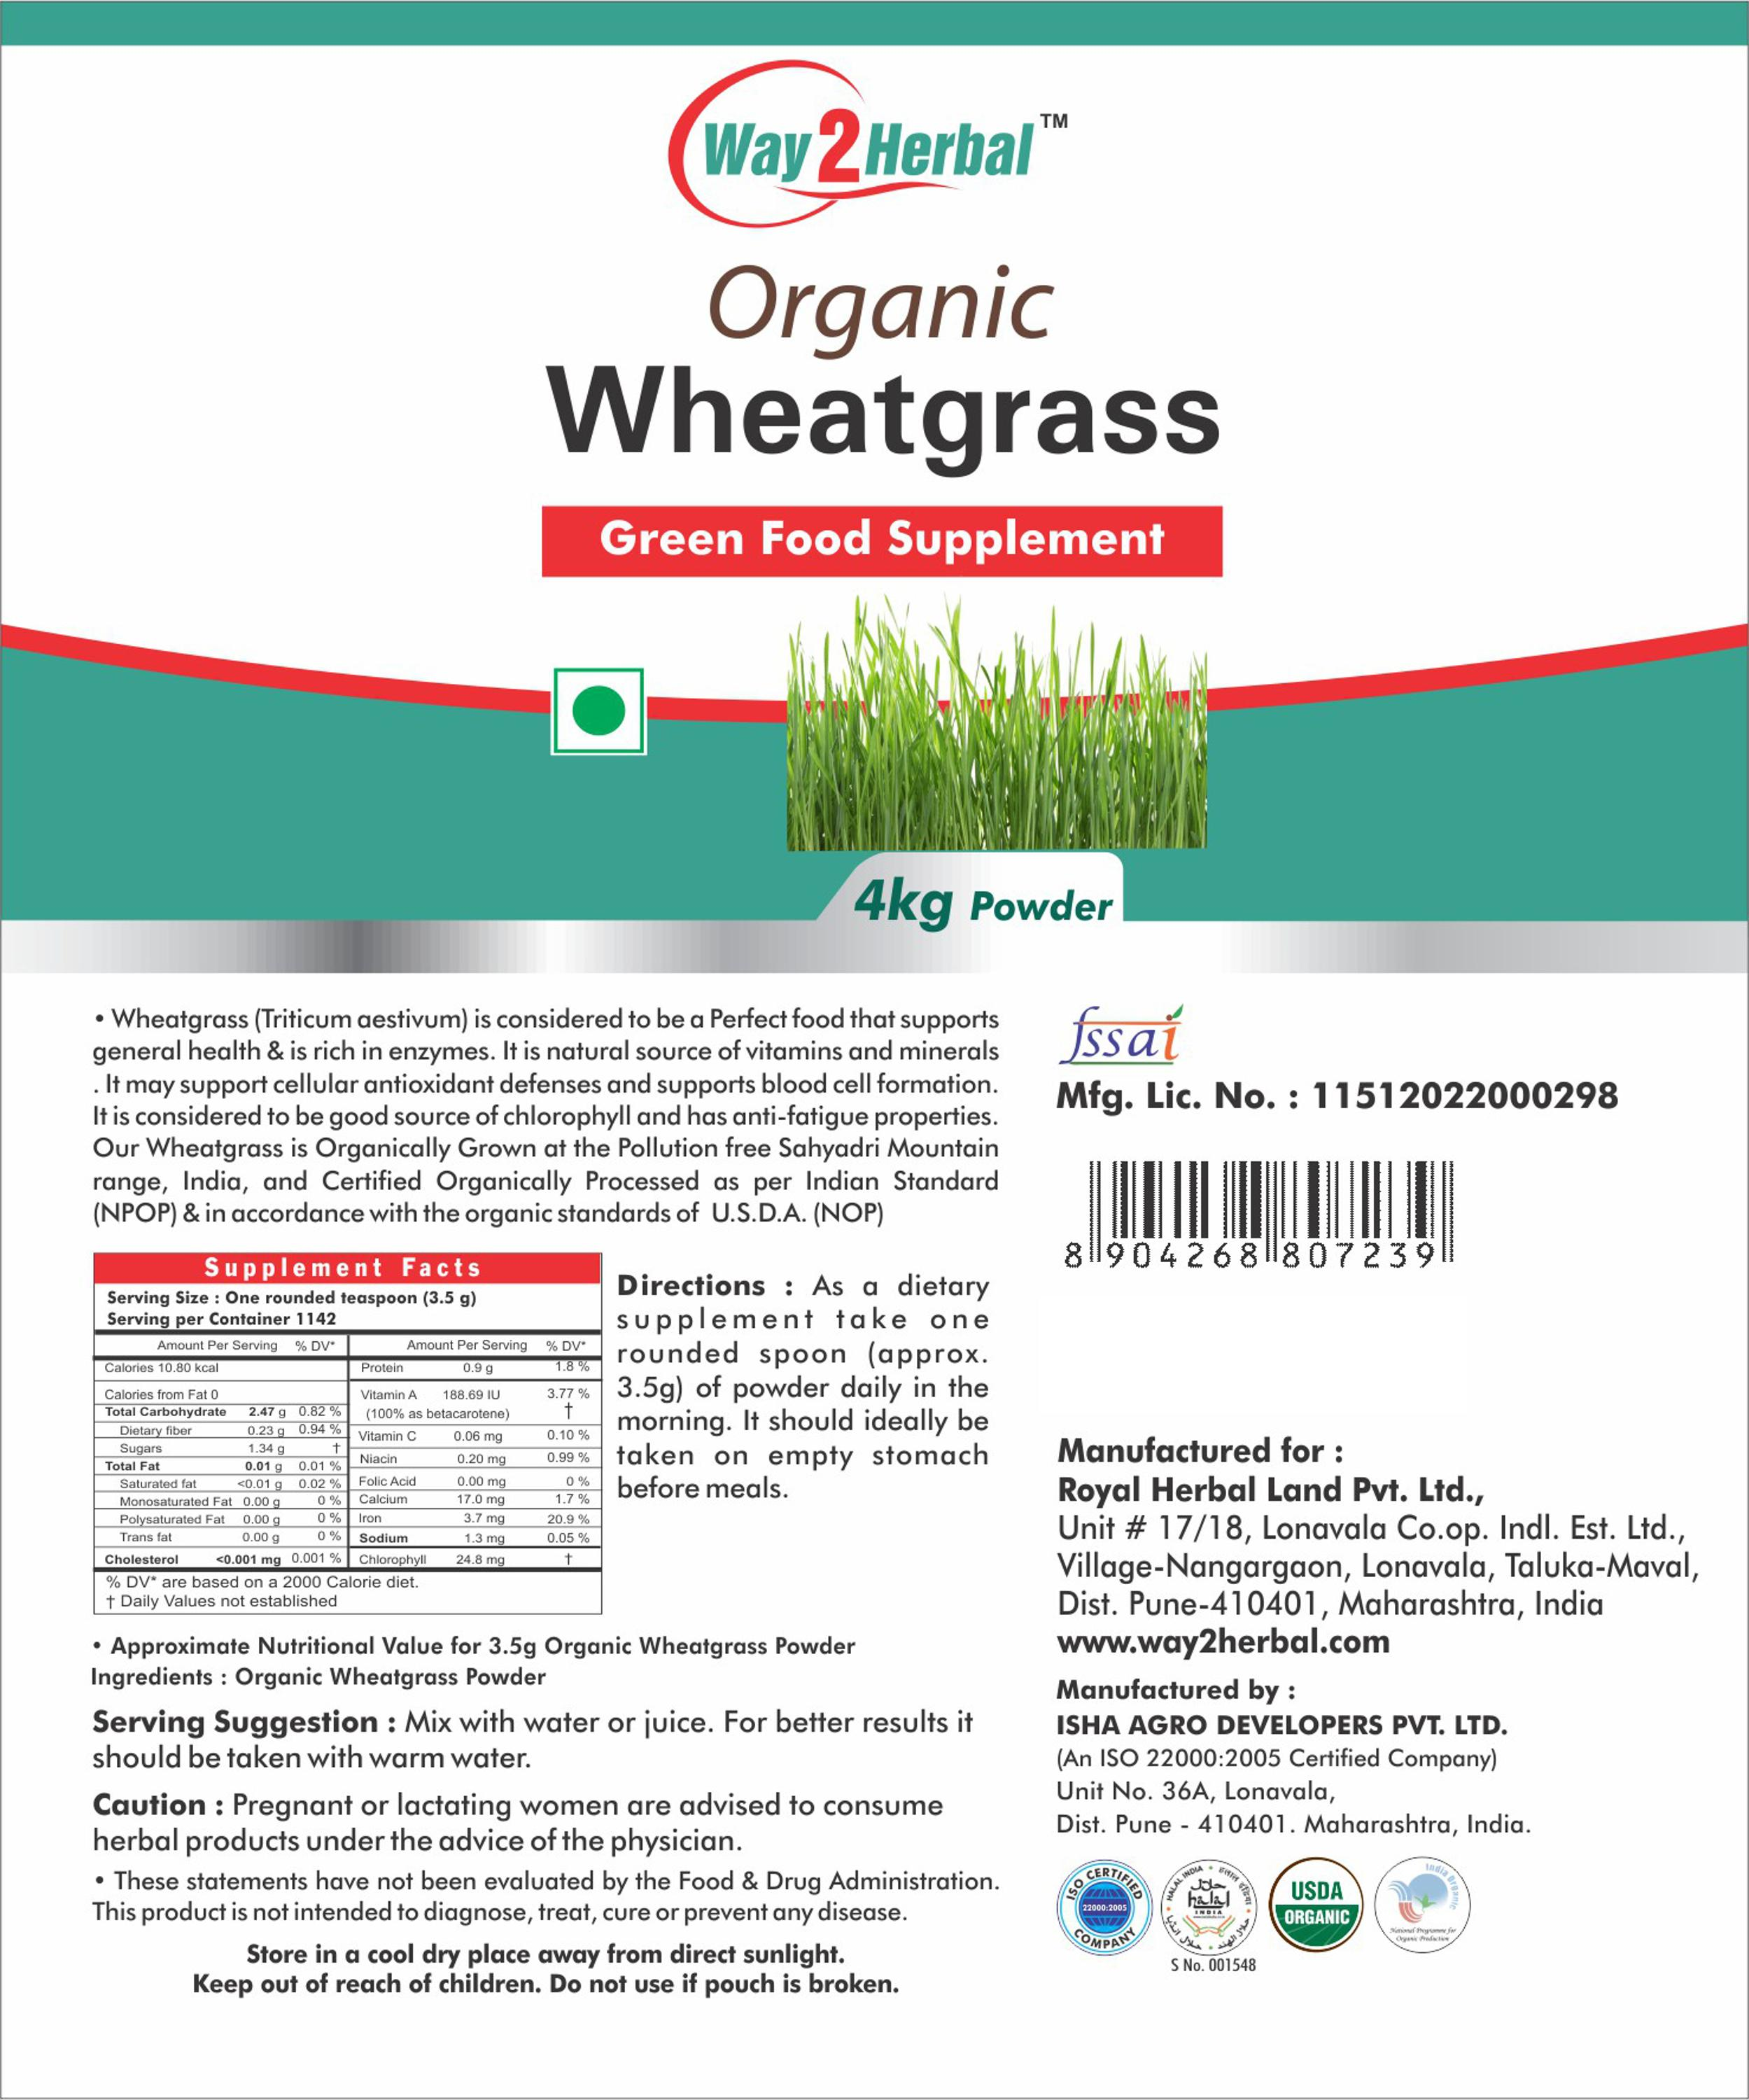 Way2Herbal Farm Fresh Wheatgrass Powder Organically certified by USDA, NOP & NPOP - Natural and Pure - 4 kg pouch pack